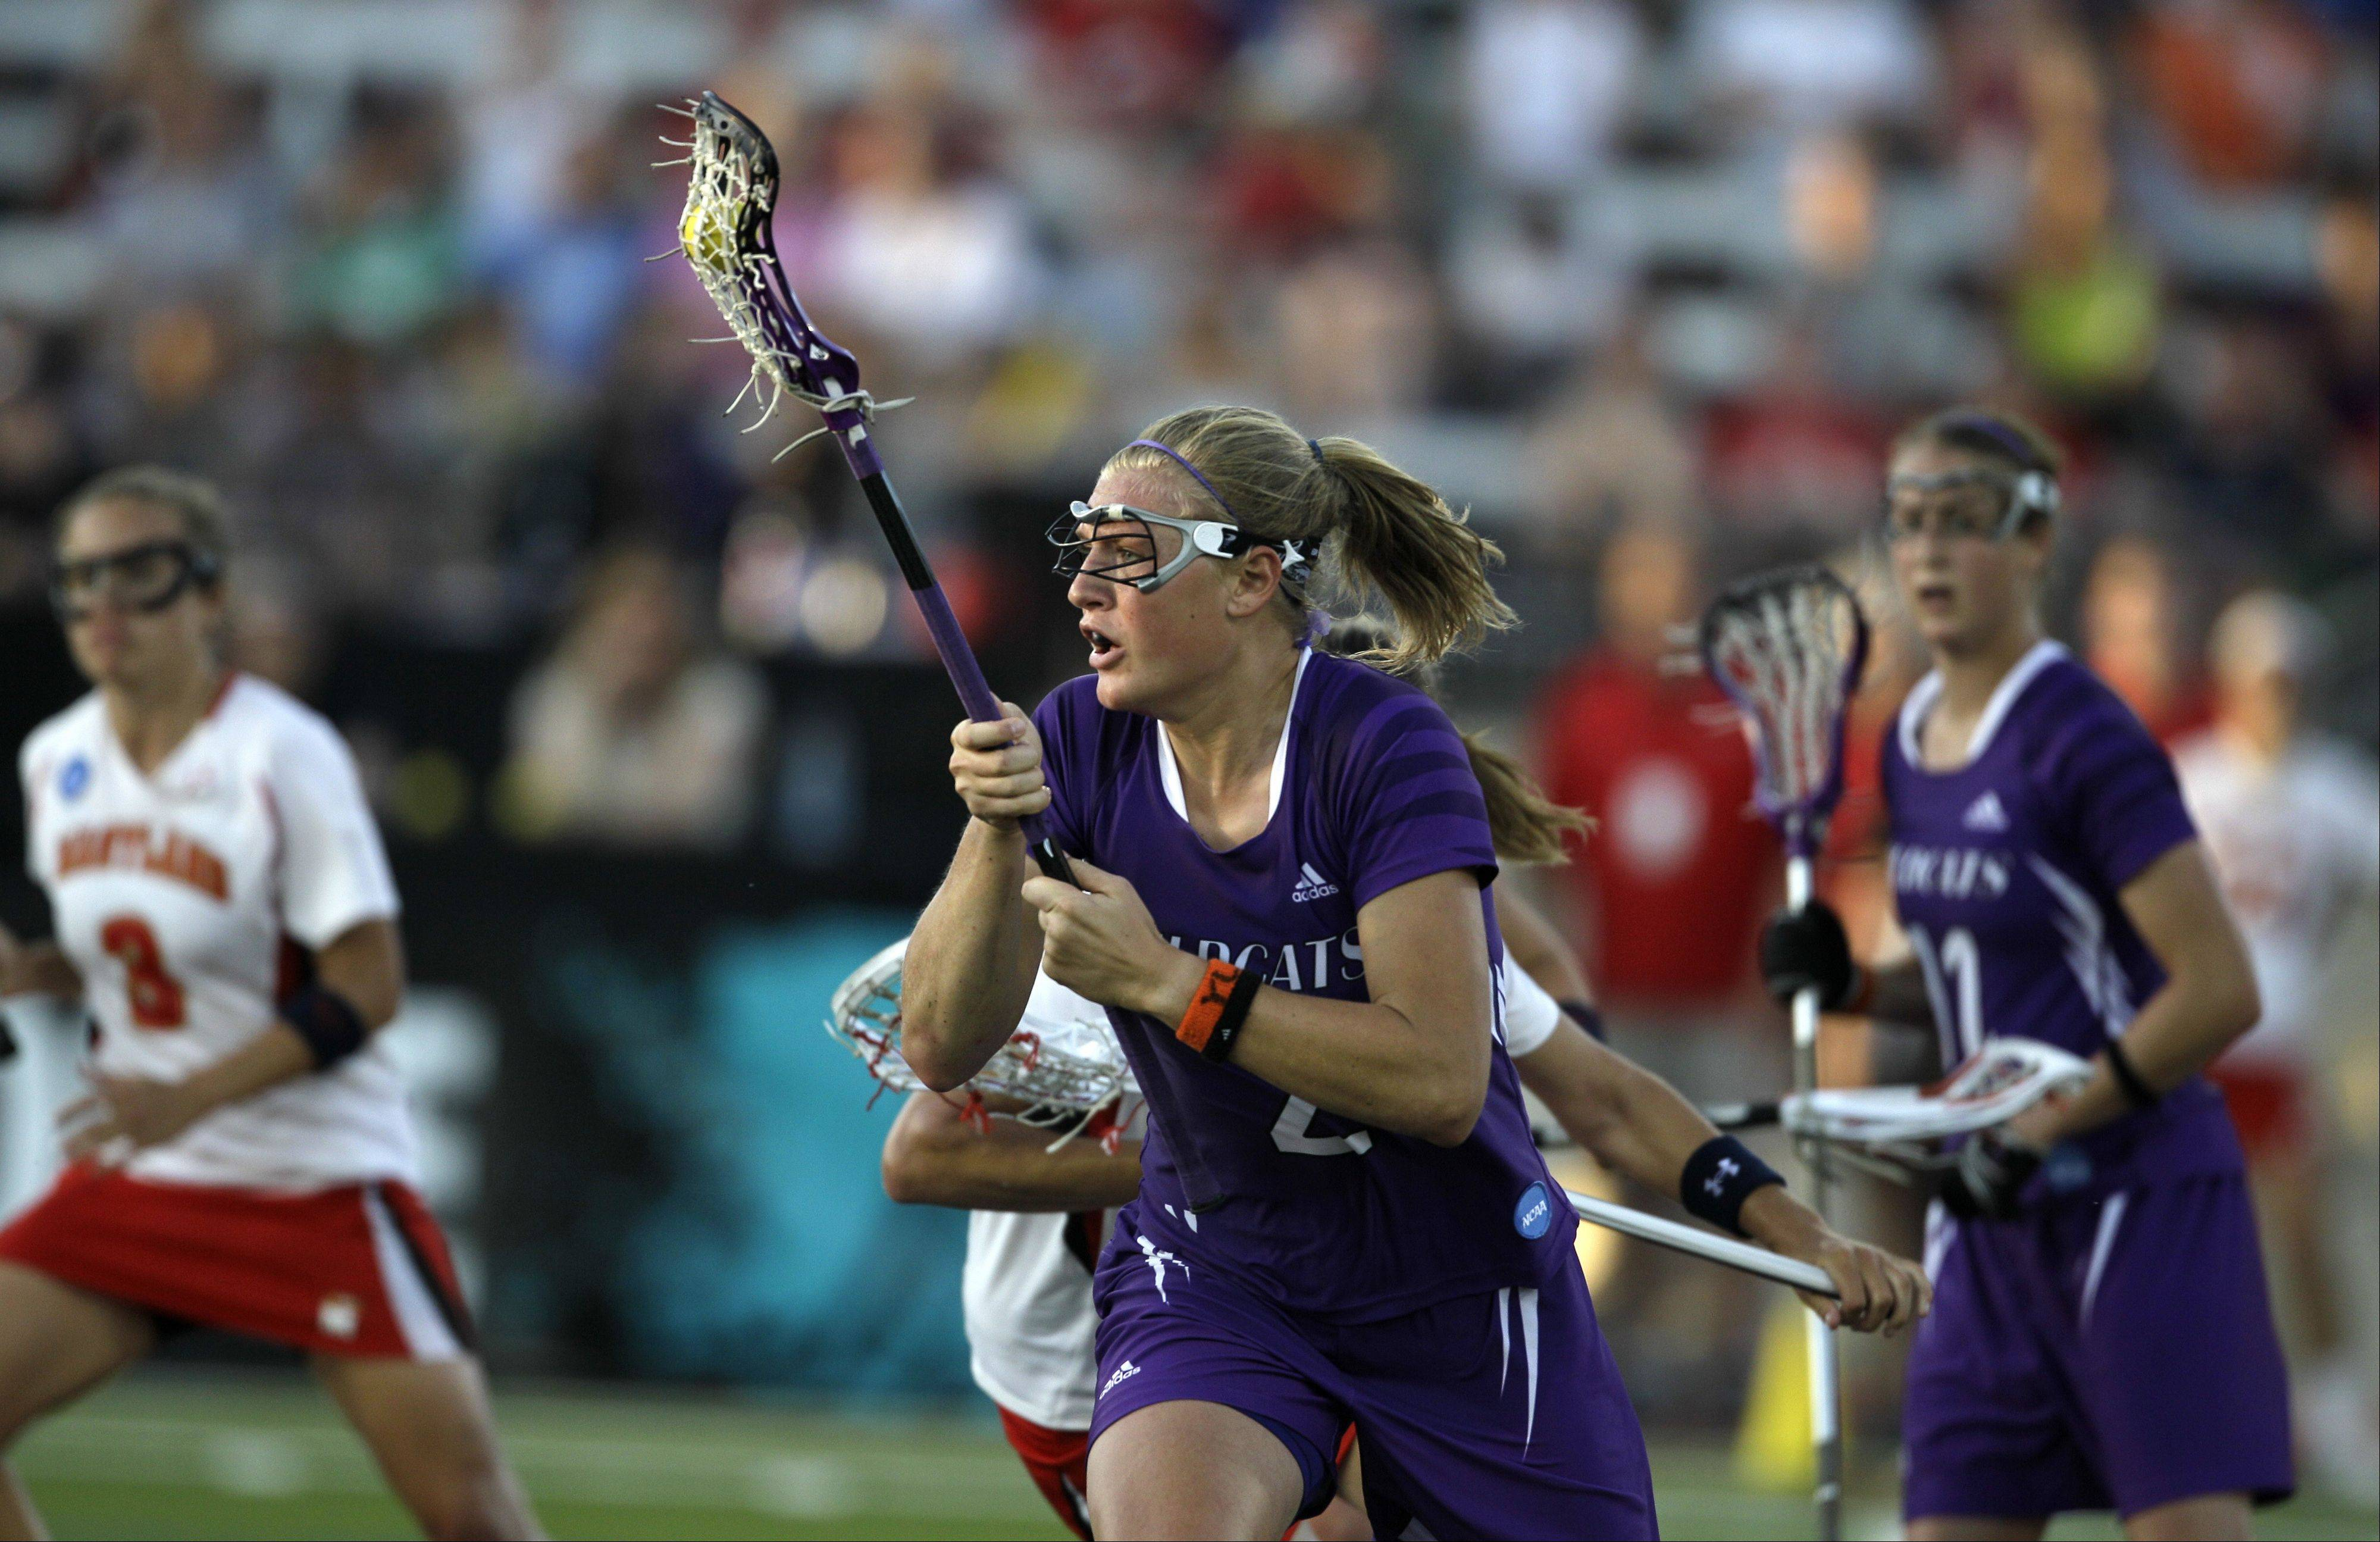 Danielle Spencer, center, is returning to Northwestern to serve as an assistant coach under NU lacrosse head coach Kelly Amonte Hiller.